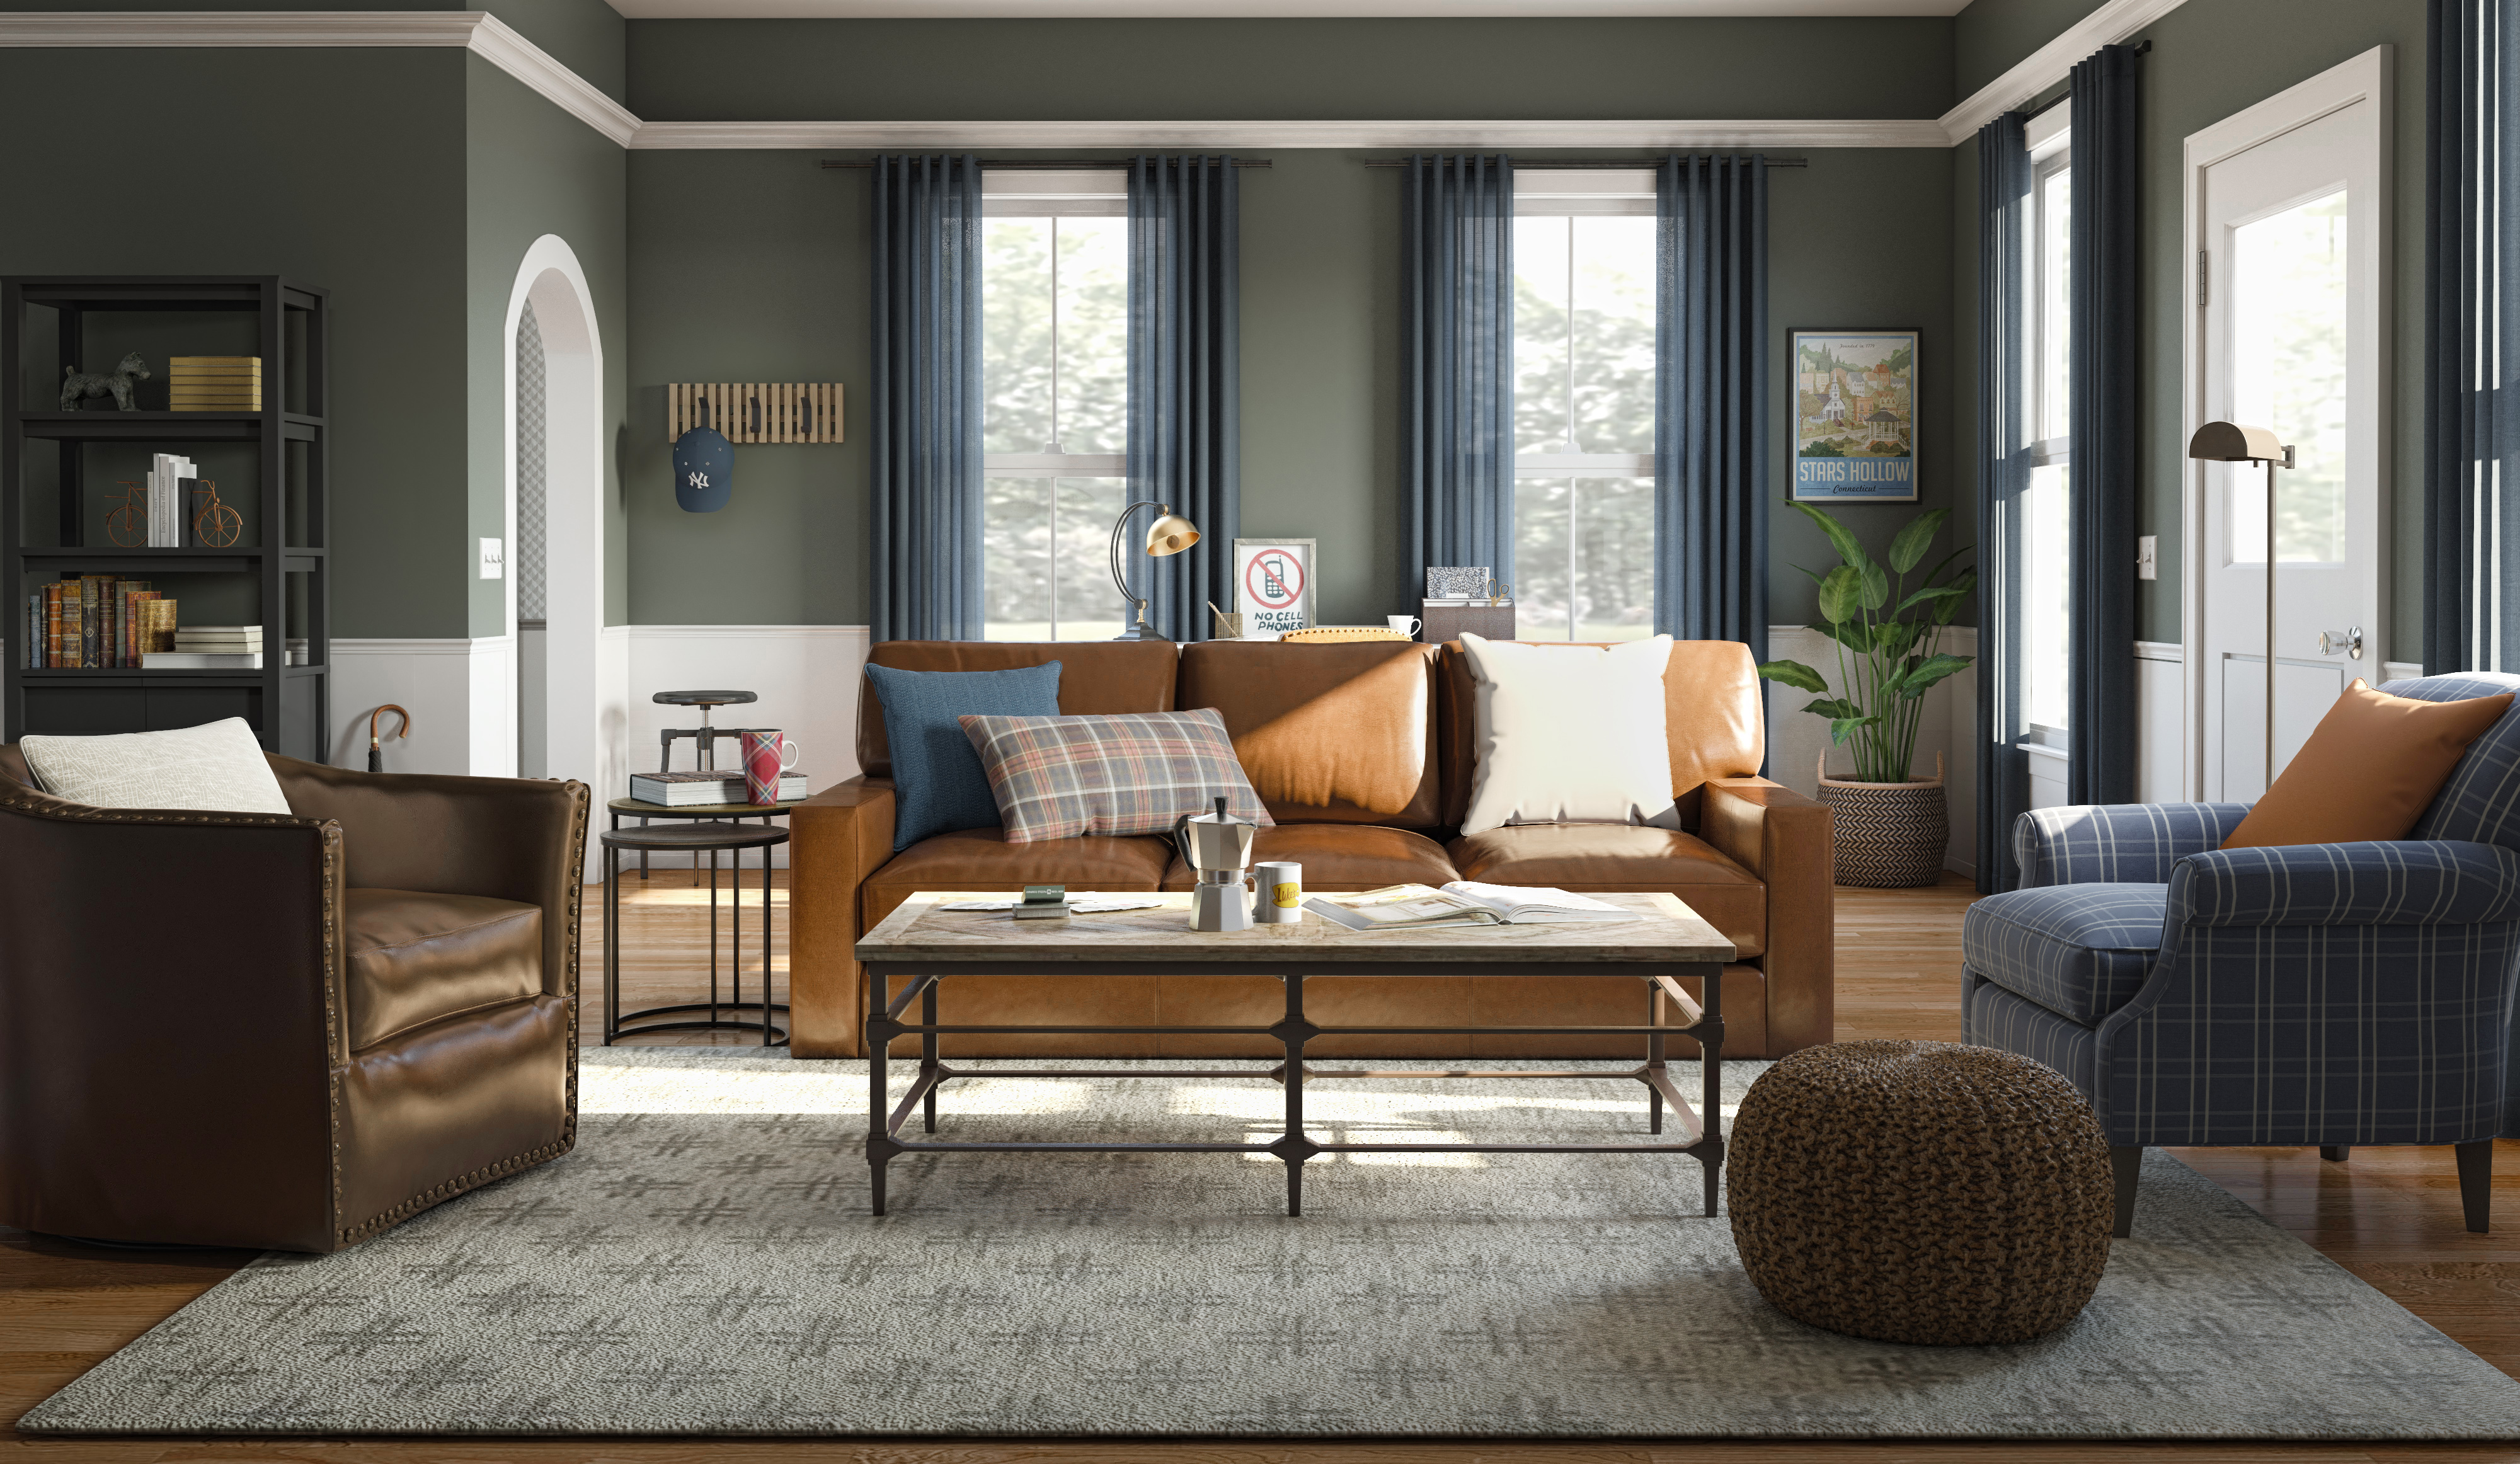 Imagining Modern Rooms for the 'Gilmore Girls' Characters